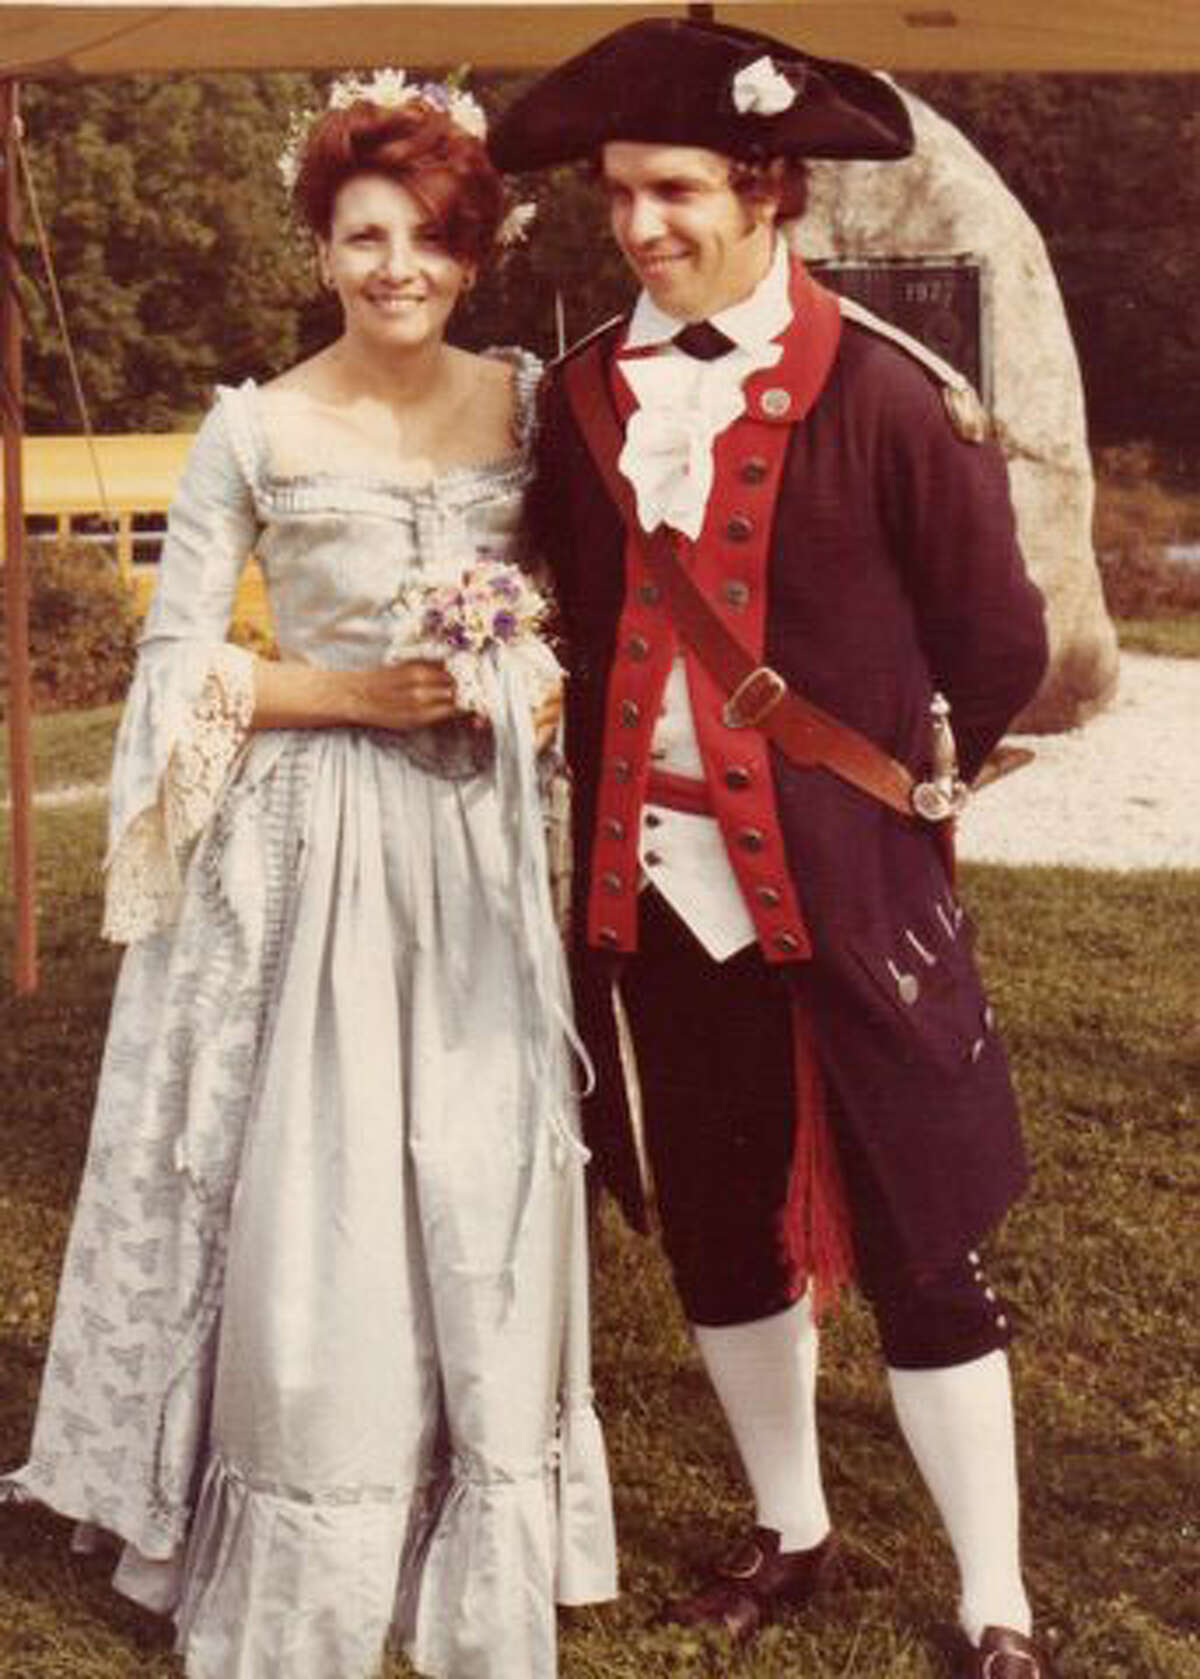 Reenactors Dee and Roger Smith wore Colonial dress at their wedding ceremony on the Battle of Bennington battlefield. - Contributed photo